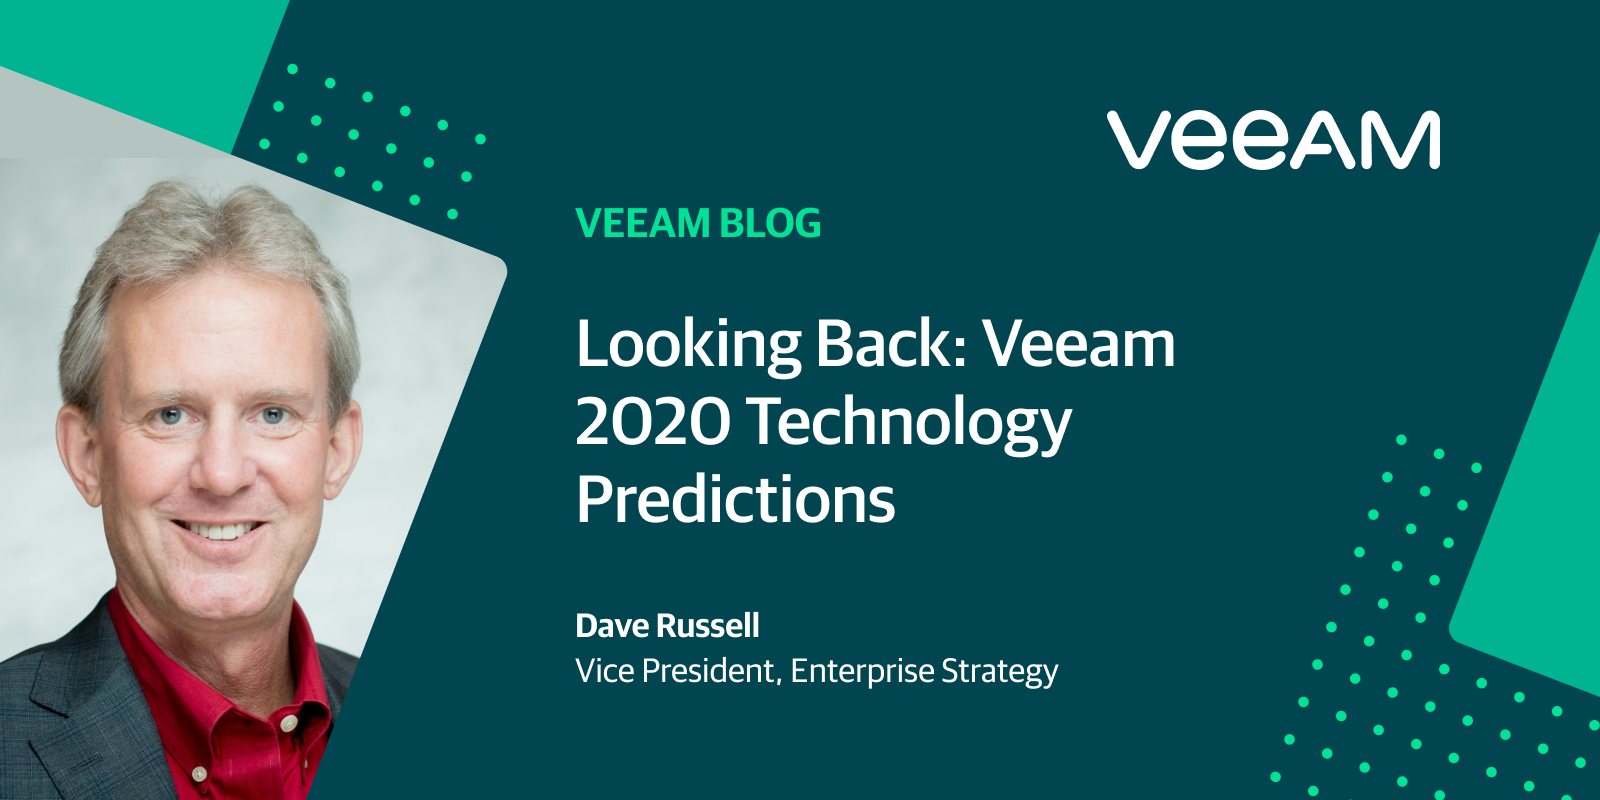 Looking Back: Veeam 2020 Technology Predictions